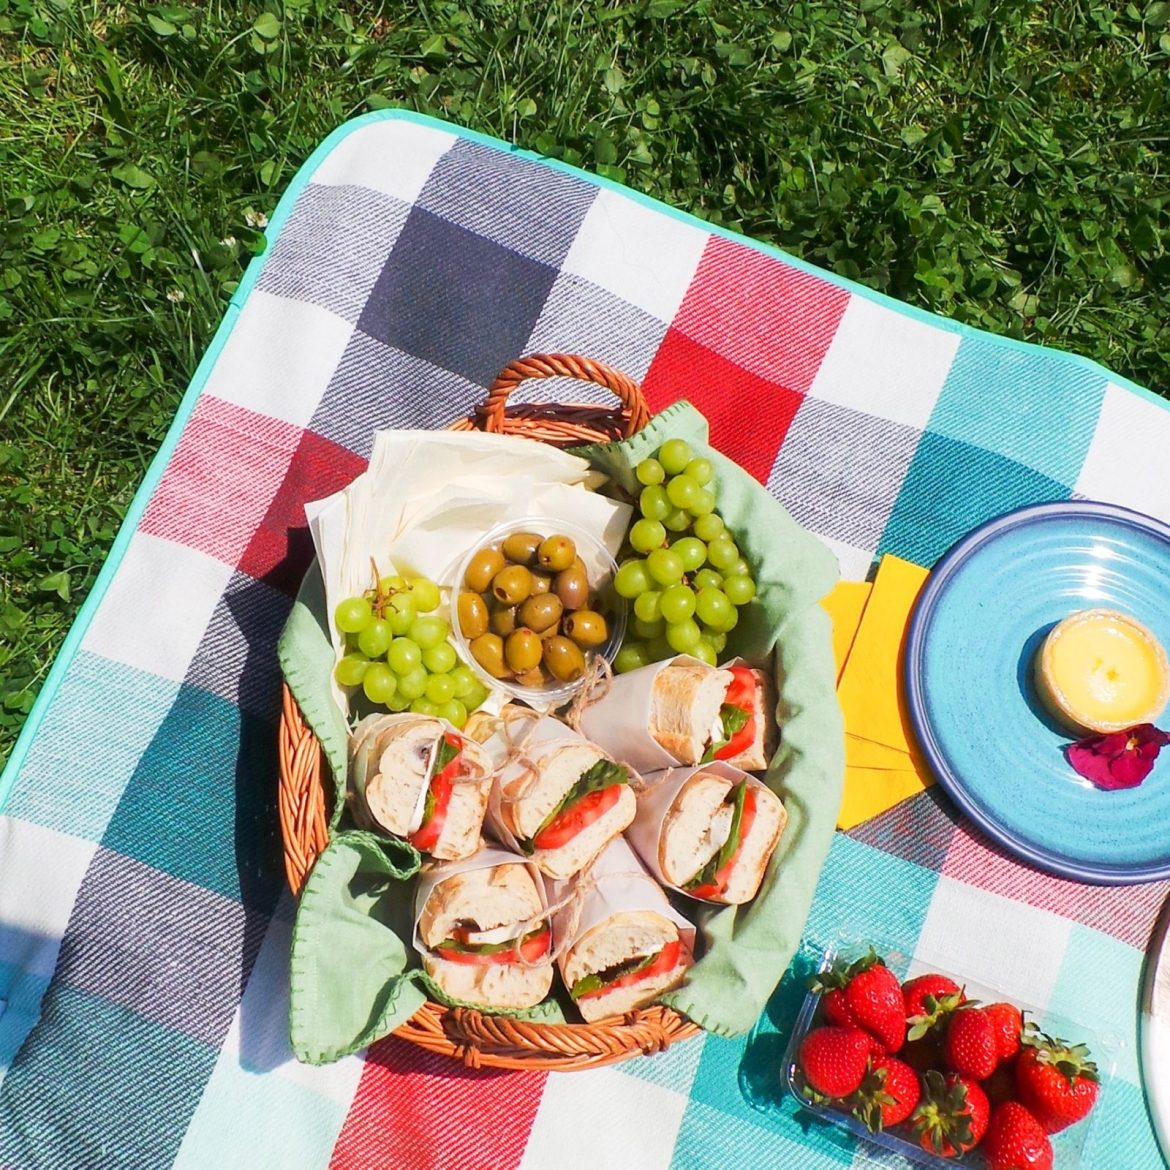 How to Have An Awesome Picnic Date